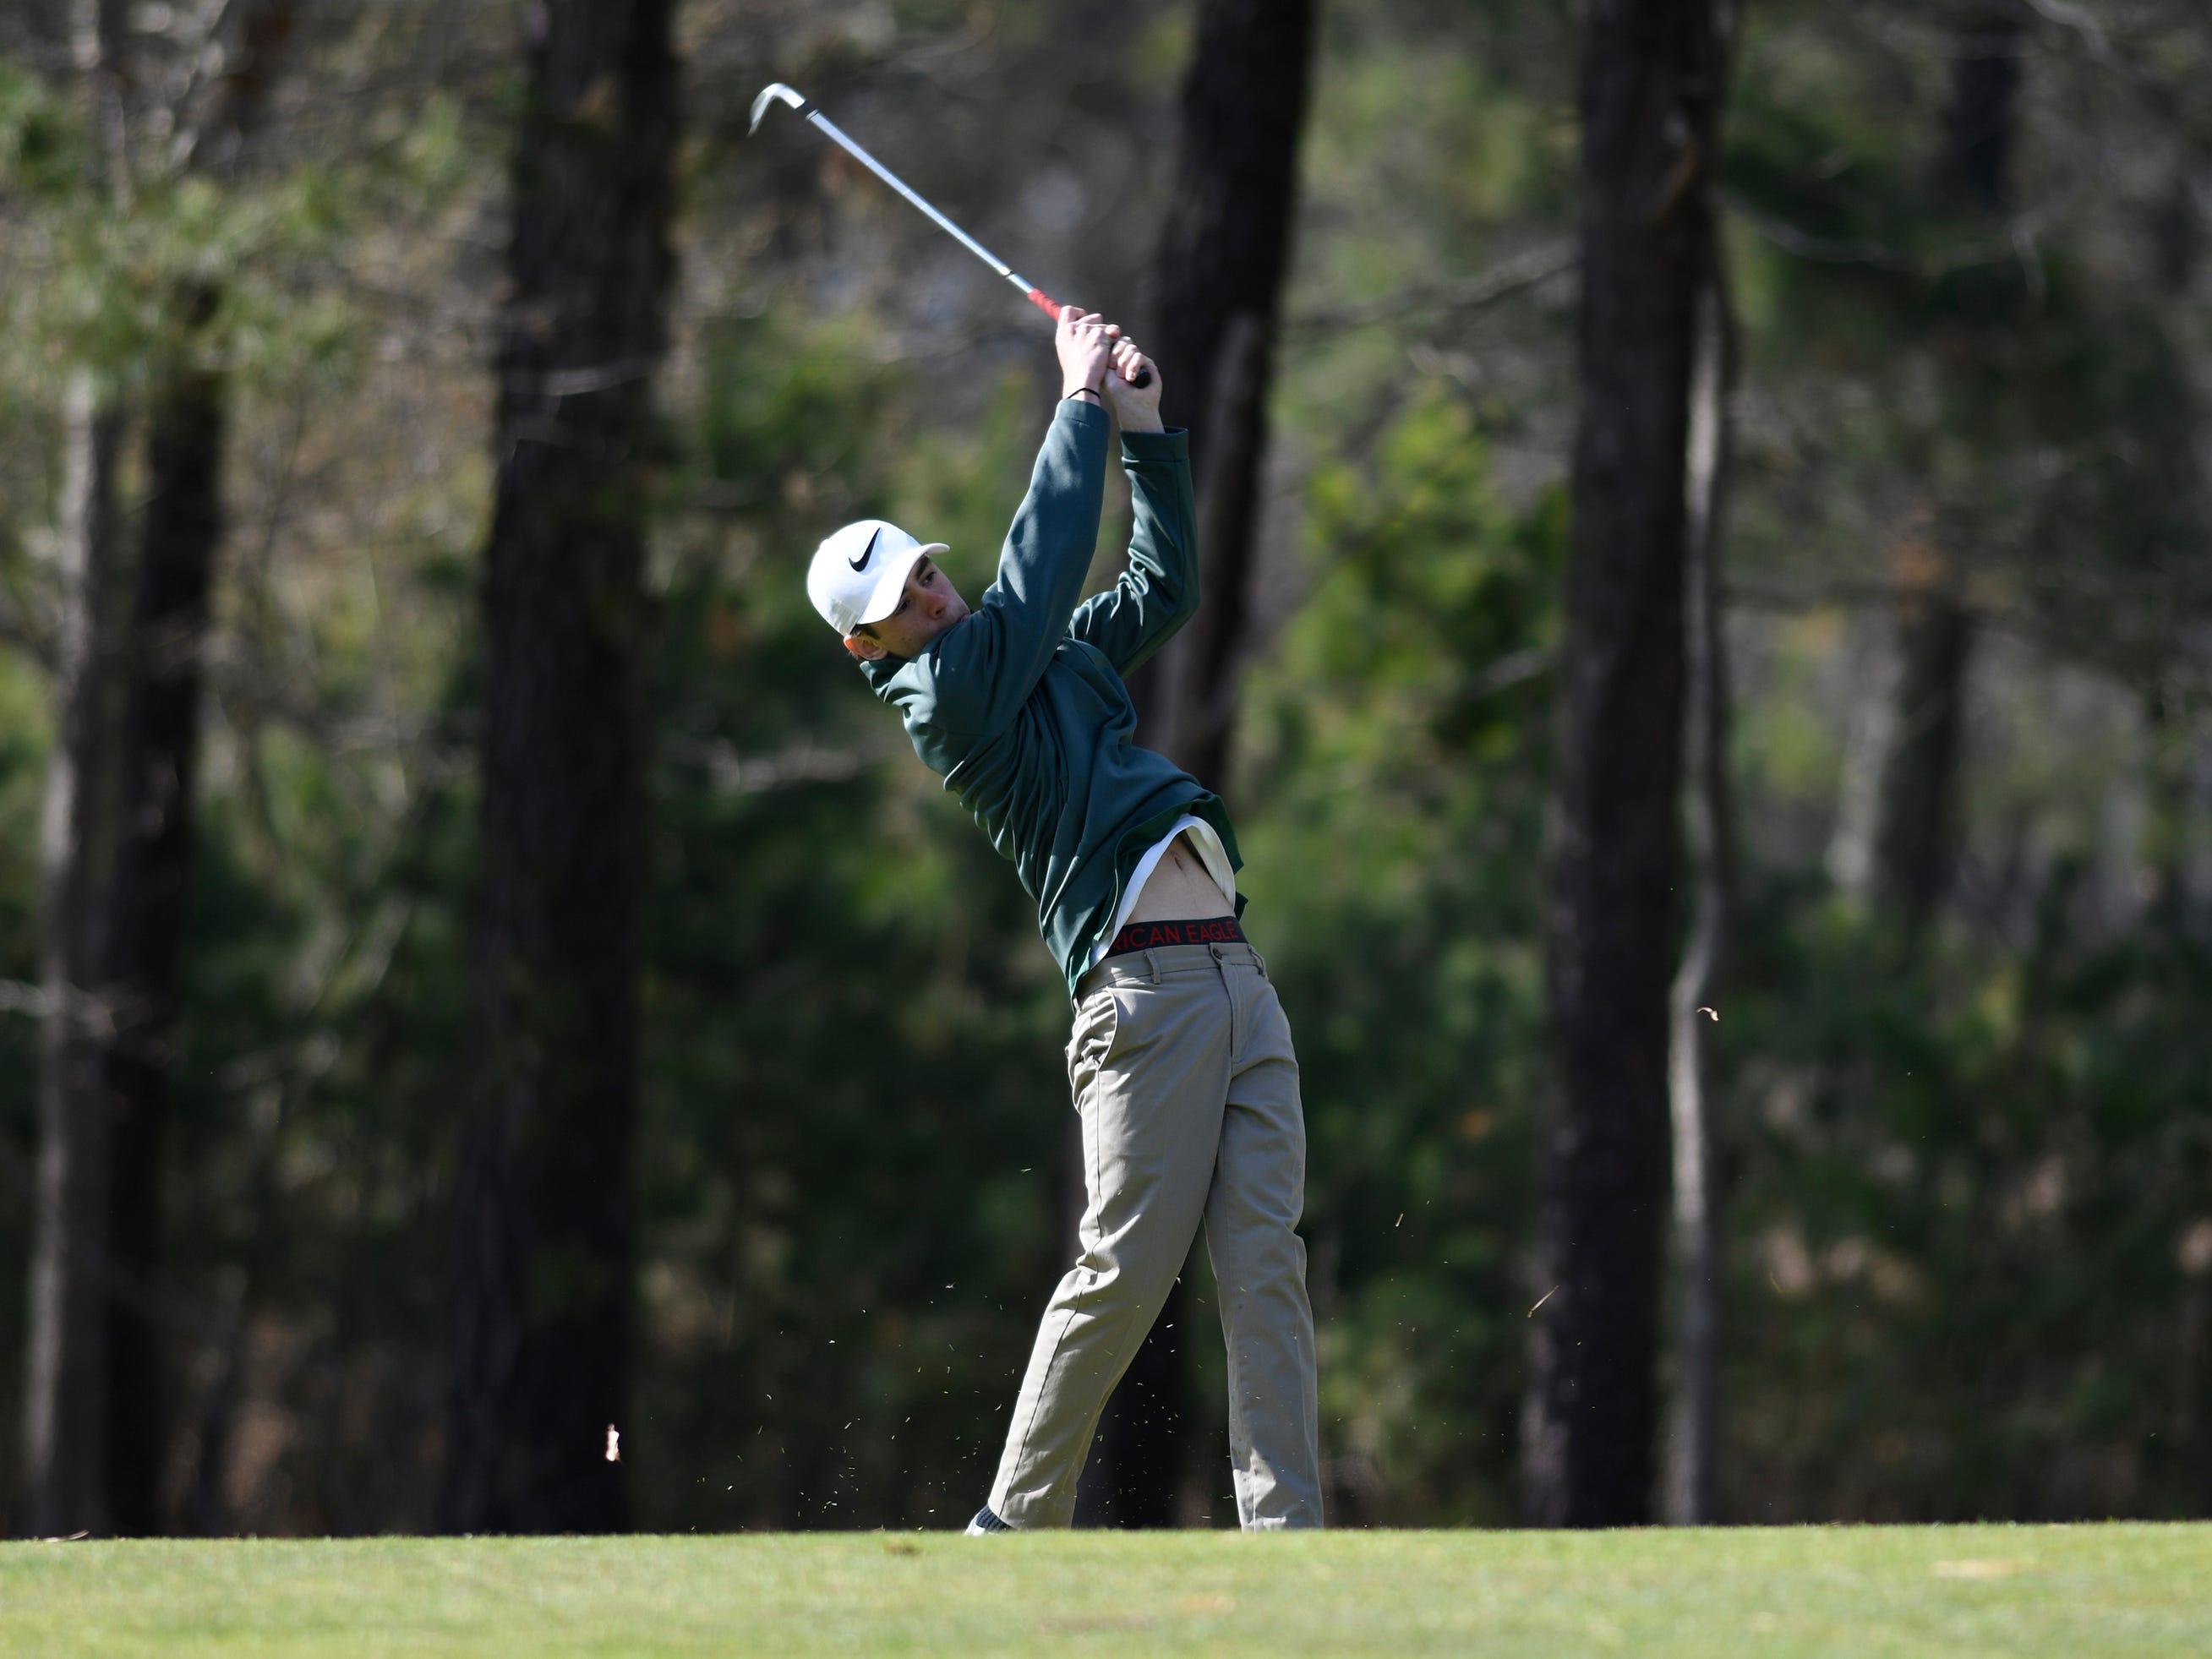 Austin Carney of Pinelands Regional High School competes at the Ocean County Tournament on April 15, 2019,  at Sea Oaks in Little Egg Harbor. Toms River North's Connor Bekefi emerged as the individual champion with a 3-over-par 75, four shots better than teammate Leo Kane. Toms River North successfully defended its team title, posting a total of 336, which was 18 shots better than Southern. Brick Memorial finished third.